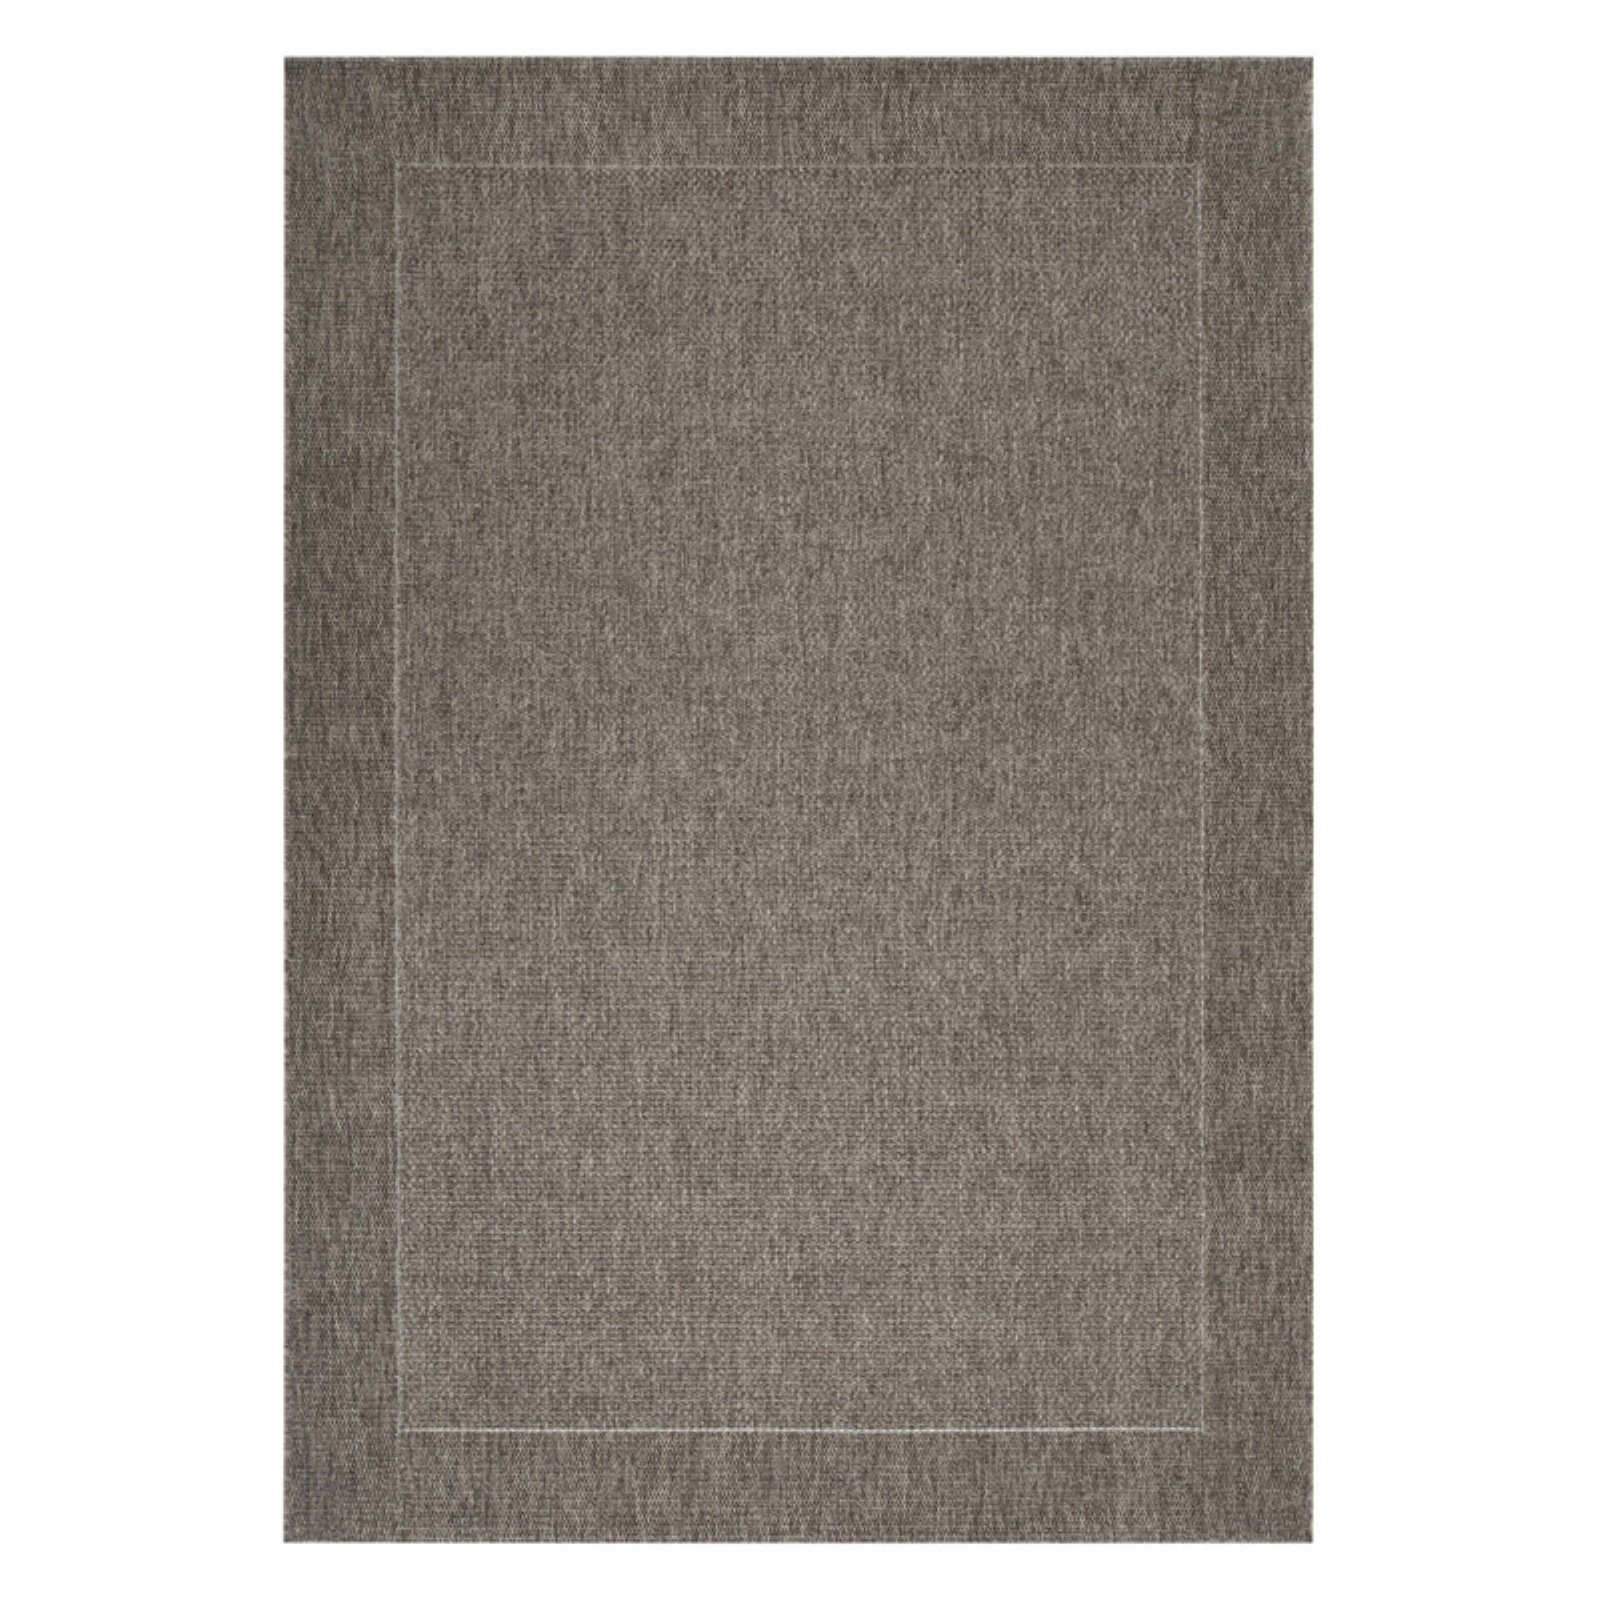 Surya ELT-1008 Elements Indoor / Outdoor Area Rug